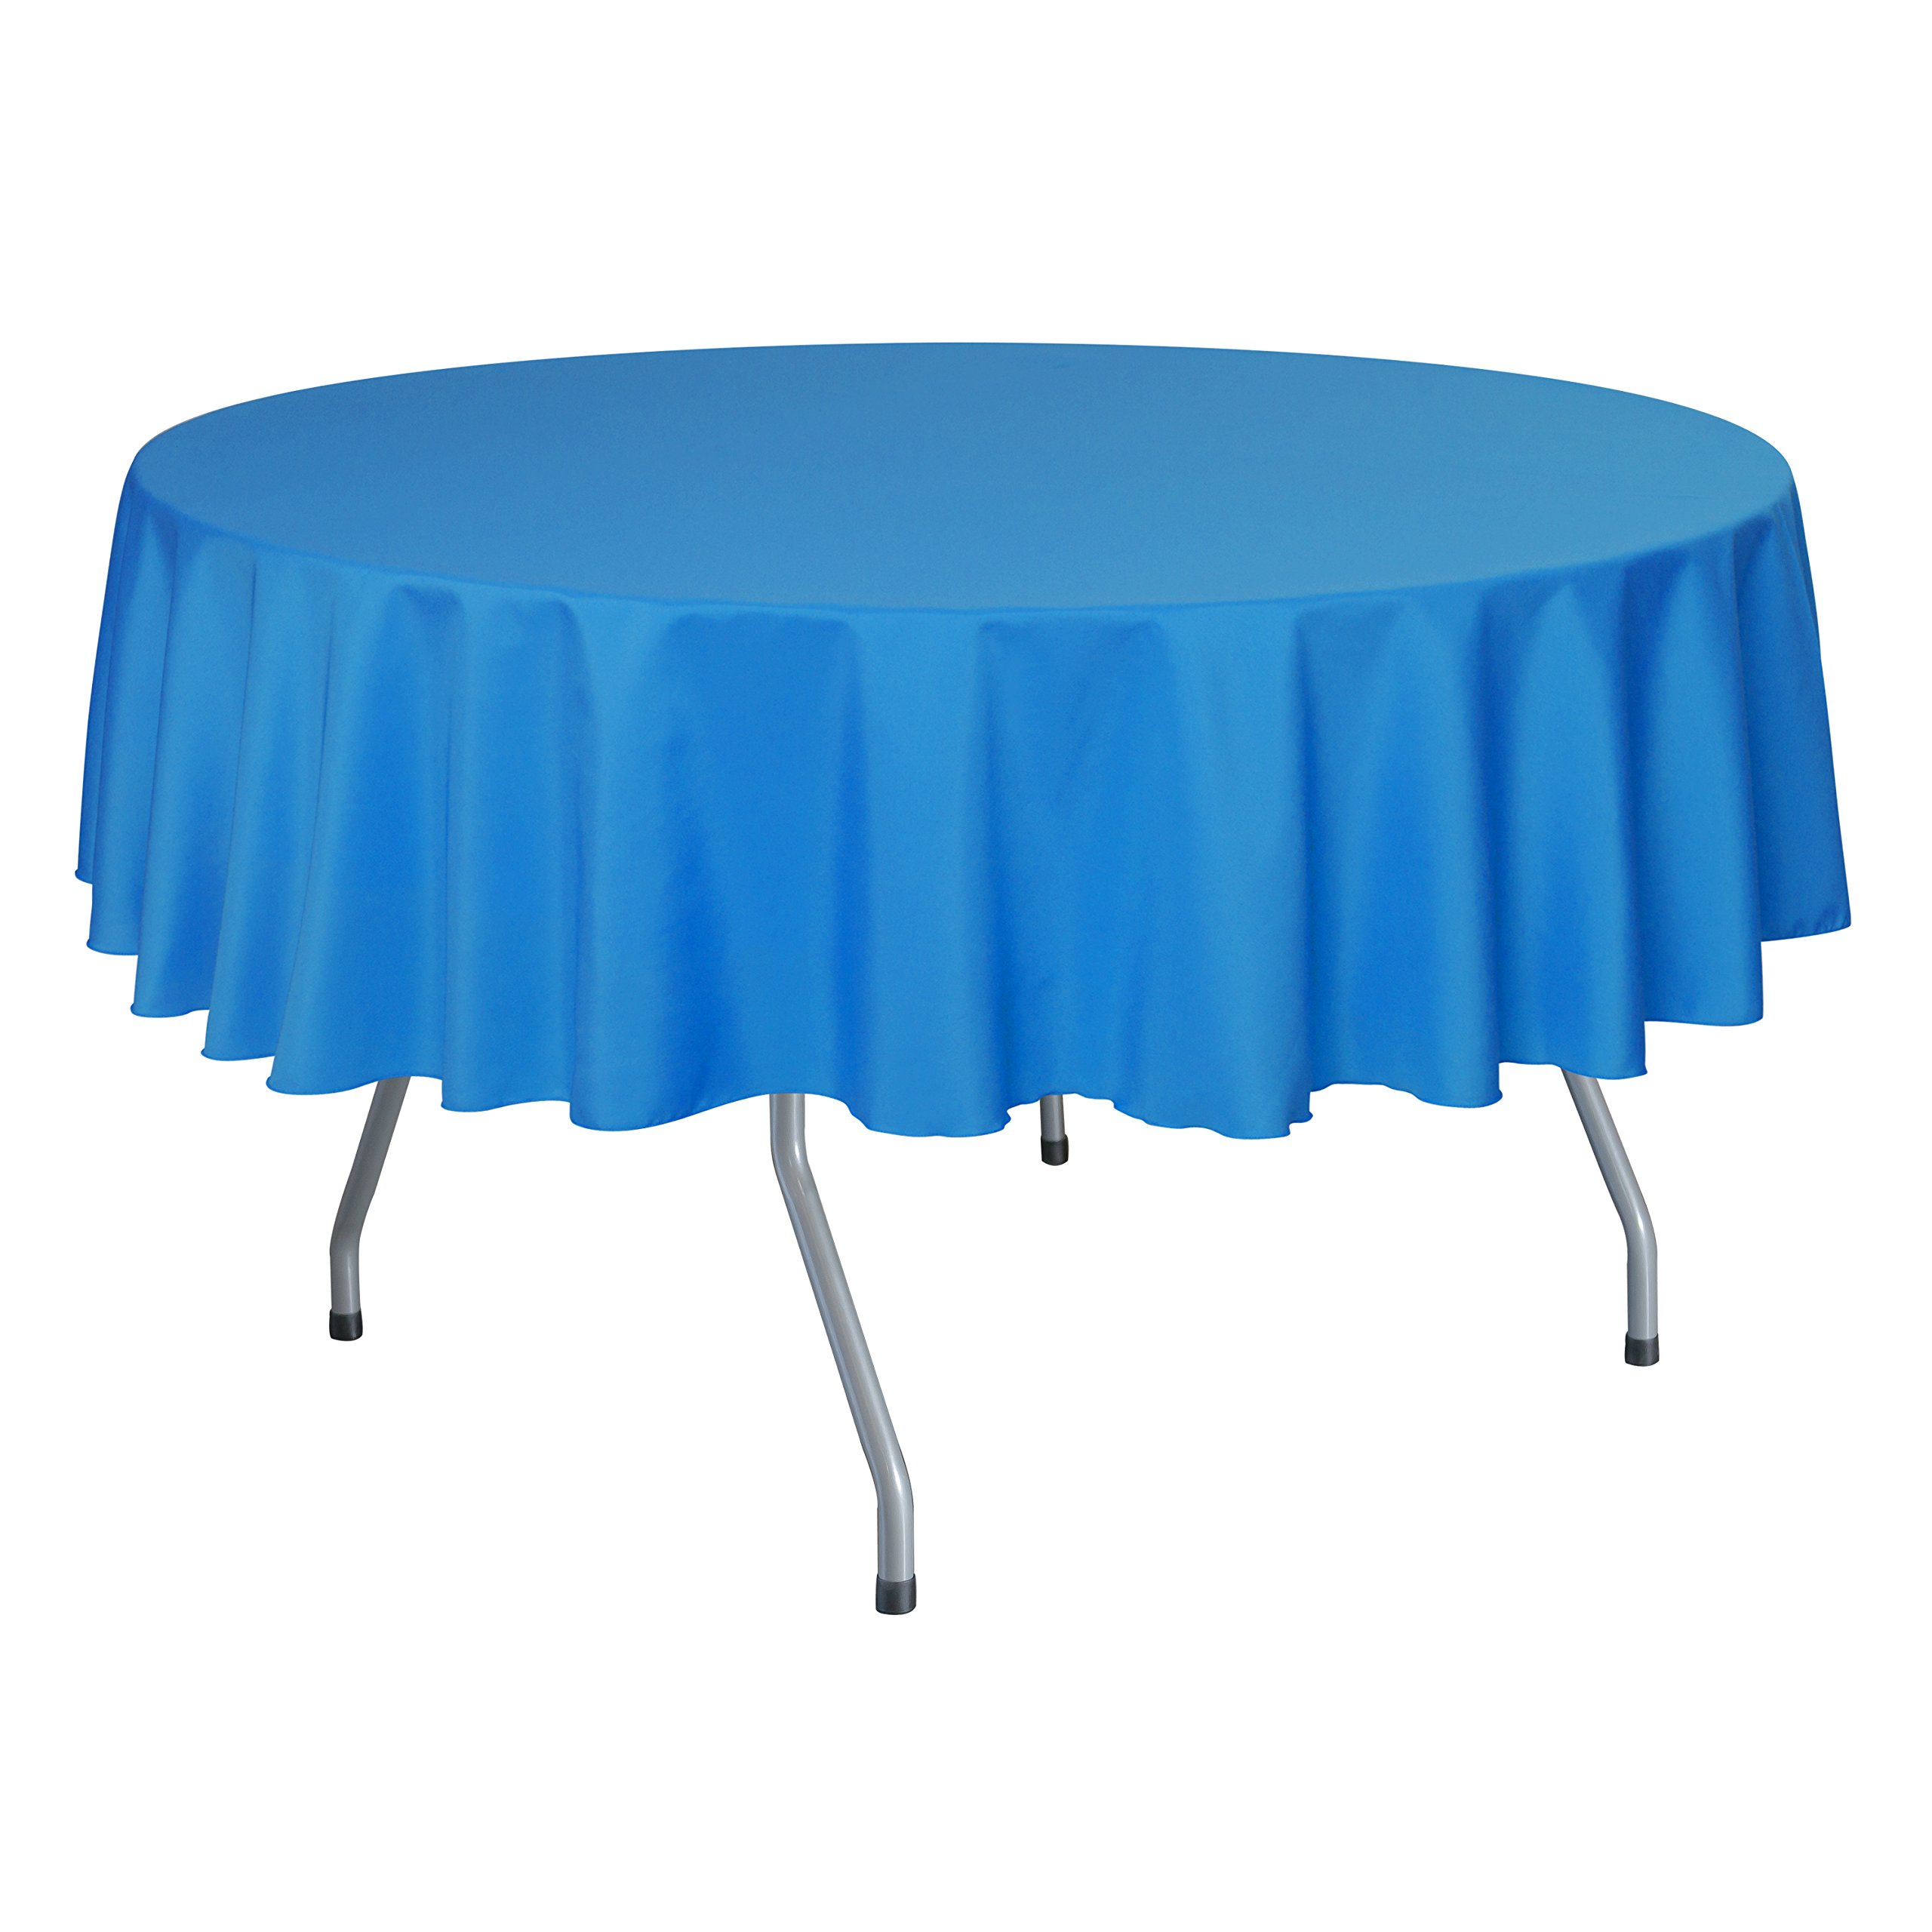 Ultimate Textile (10 Pack) 84-Inch Round Polyester Linen Tablecloth - for Wedding, Restaurant or Banquet use, Cobalt Blue by Ultimate Textile